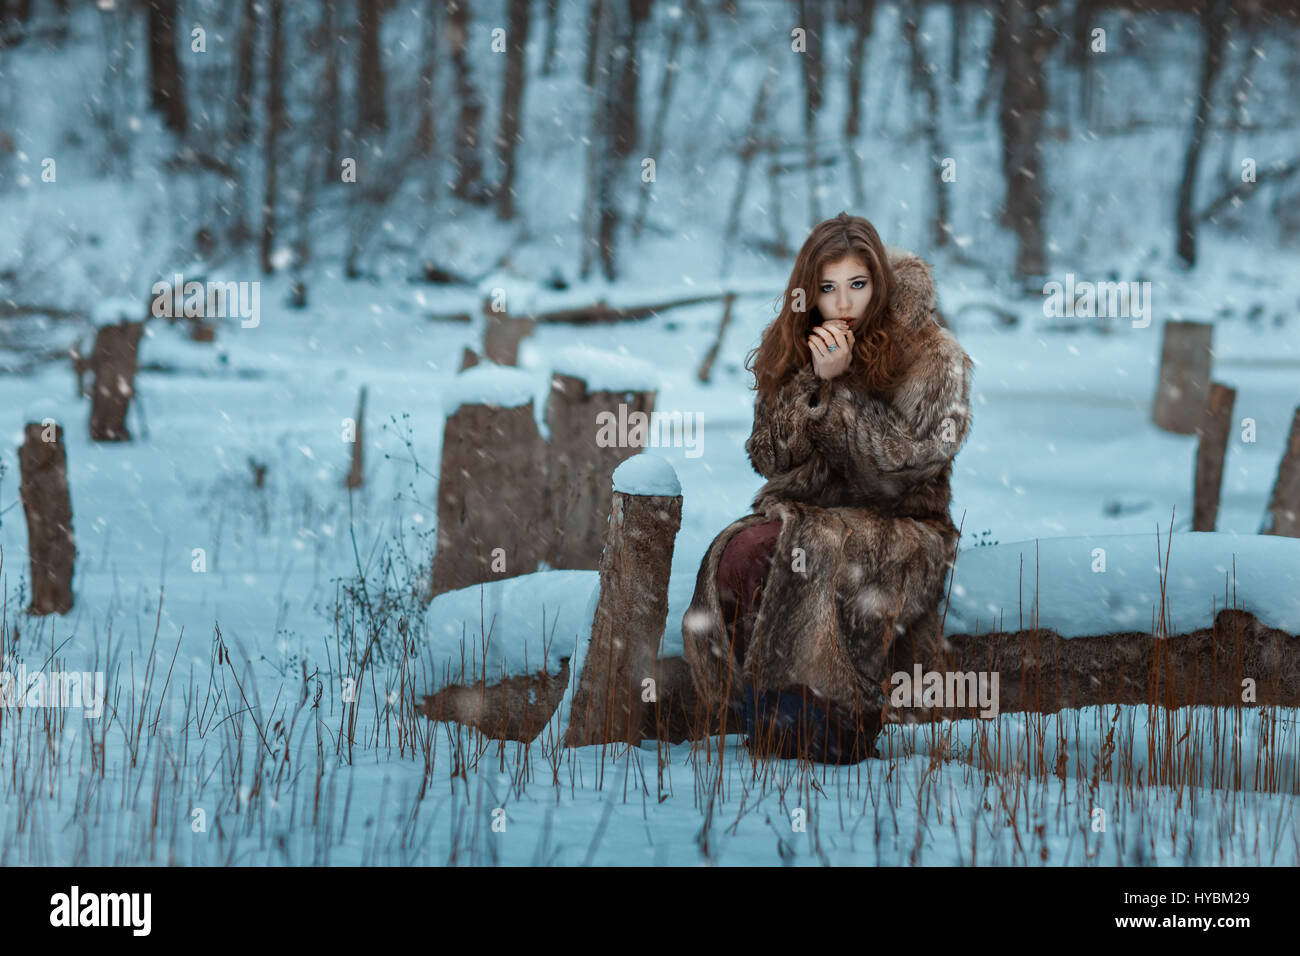 Girl is breathing on his hands warming them in winter. - Stock Image